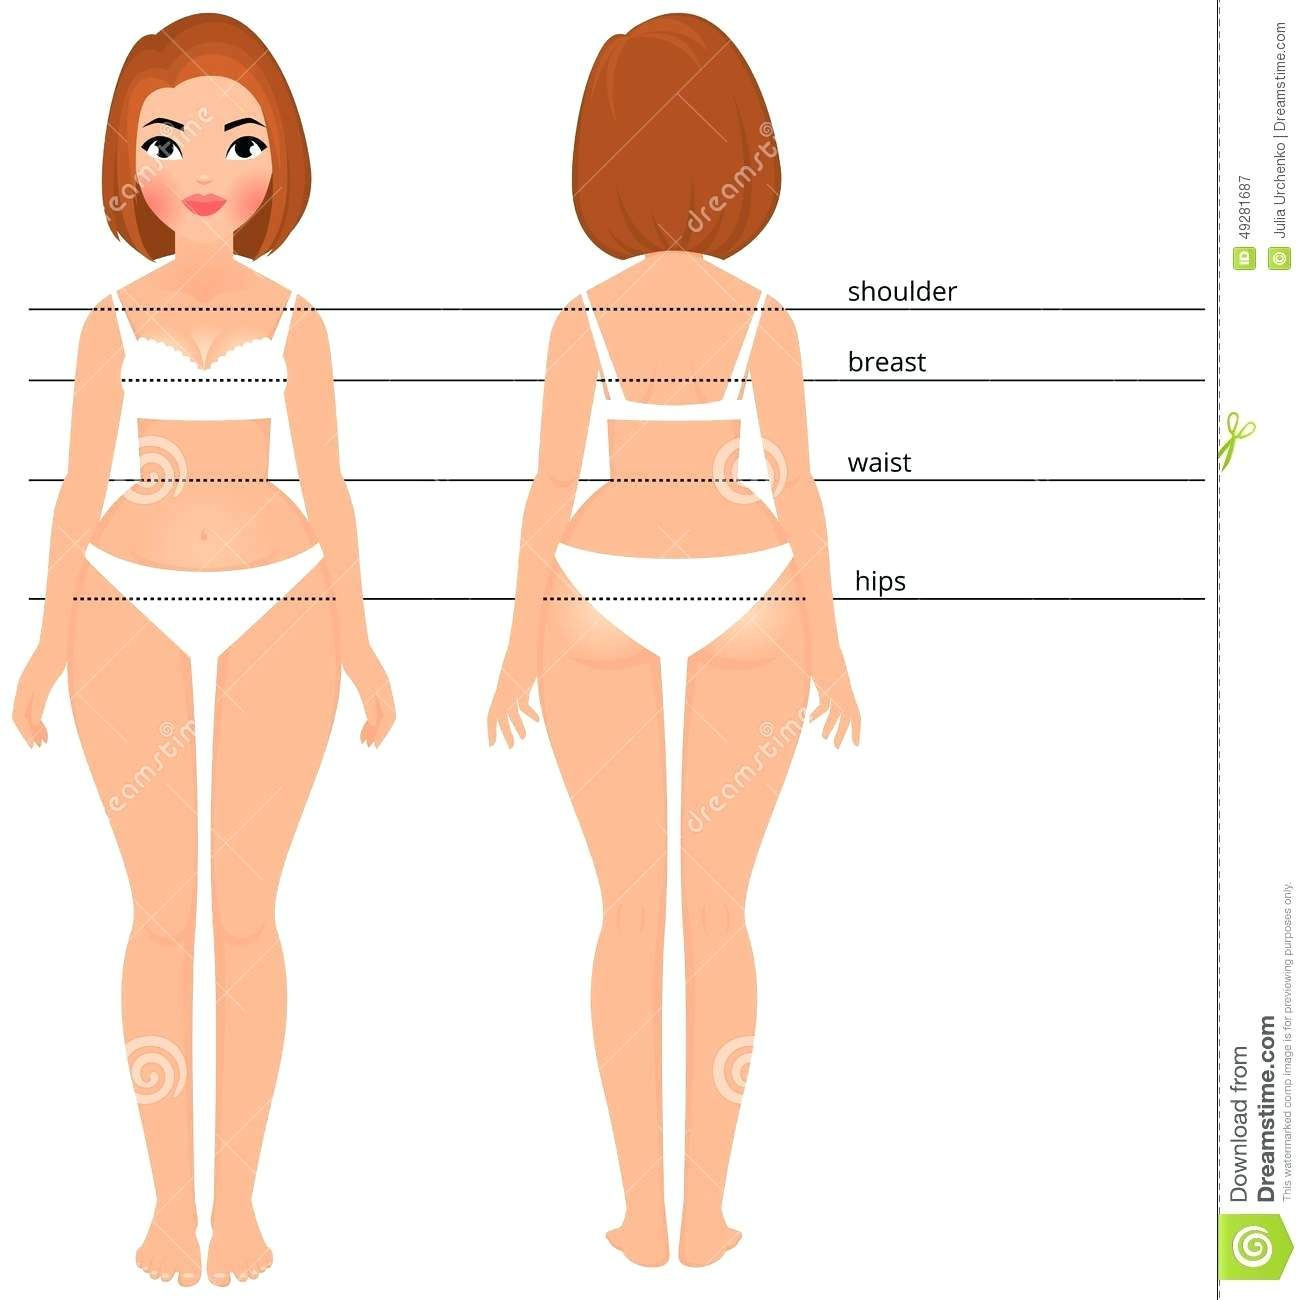 Map Of Female Body Organs Template